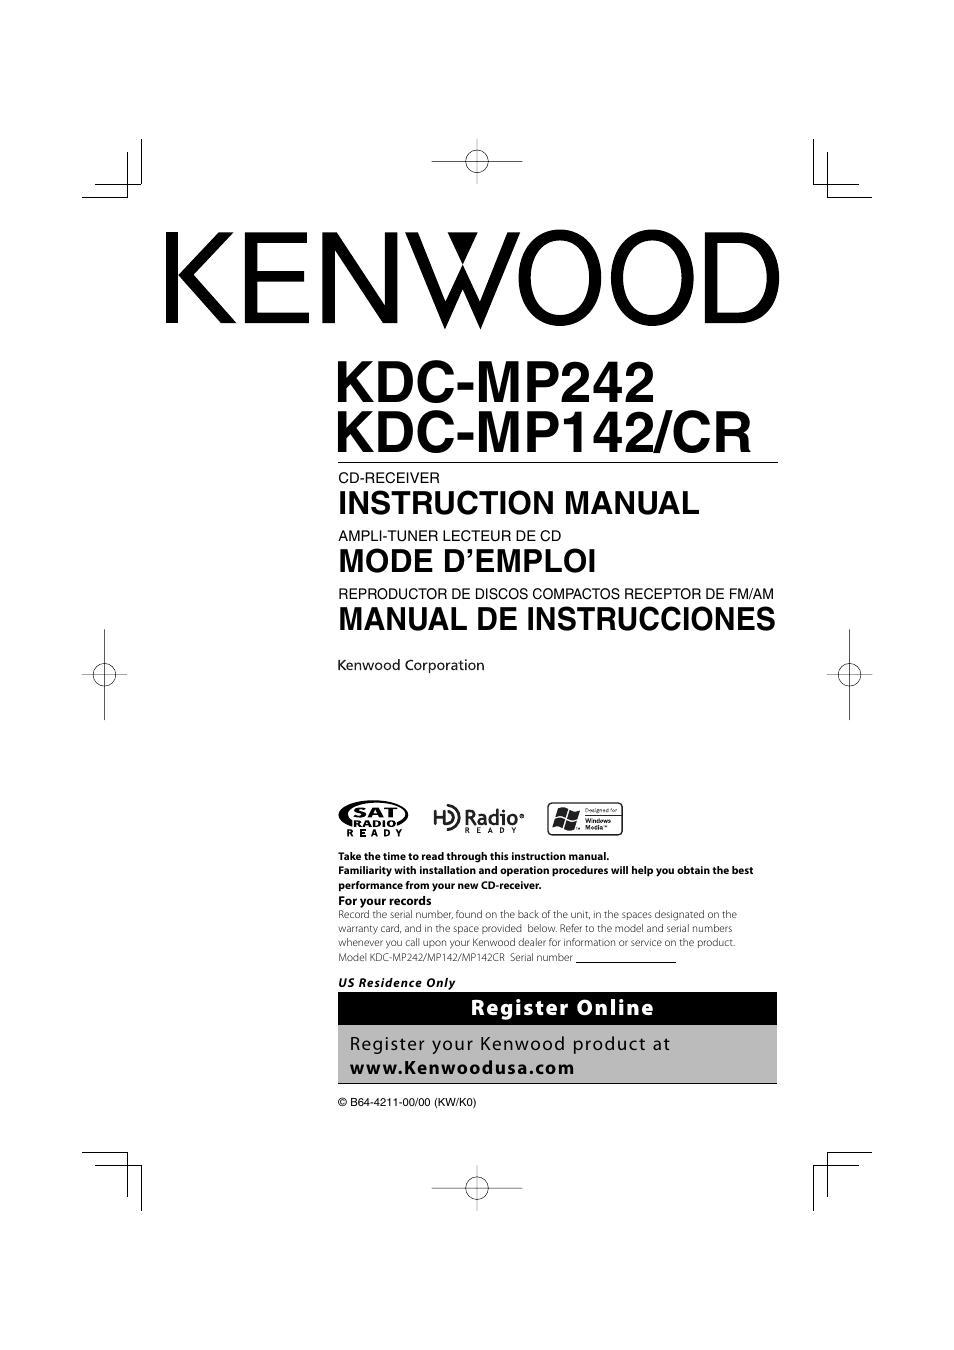 Kenwood Kdc Mp142 Manual Wiring Diagram User 56 Pages Rh Manualsdir Com Sleeve Model